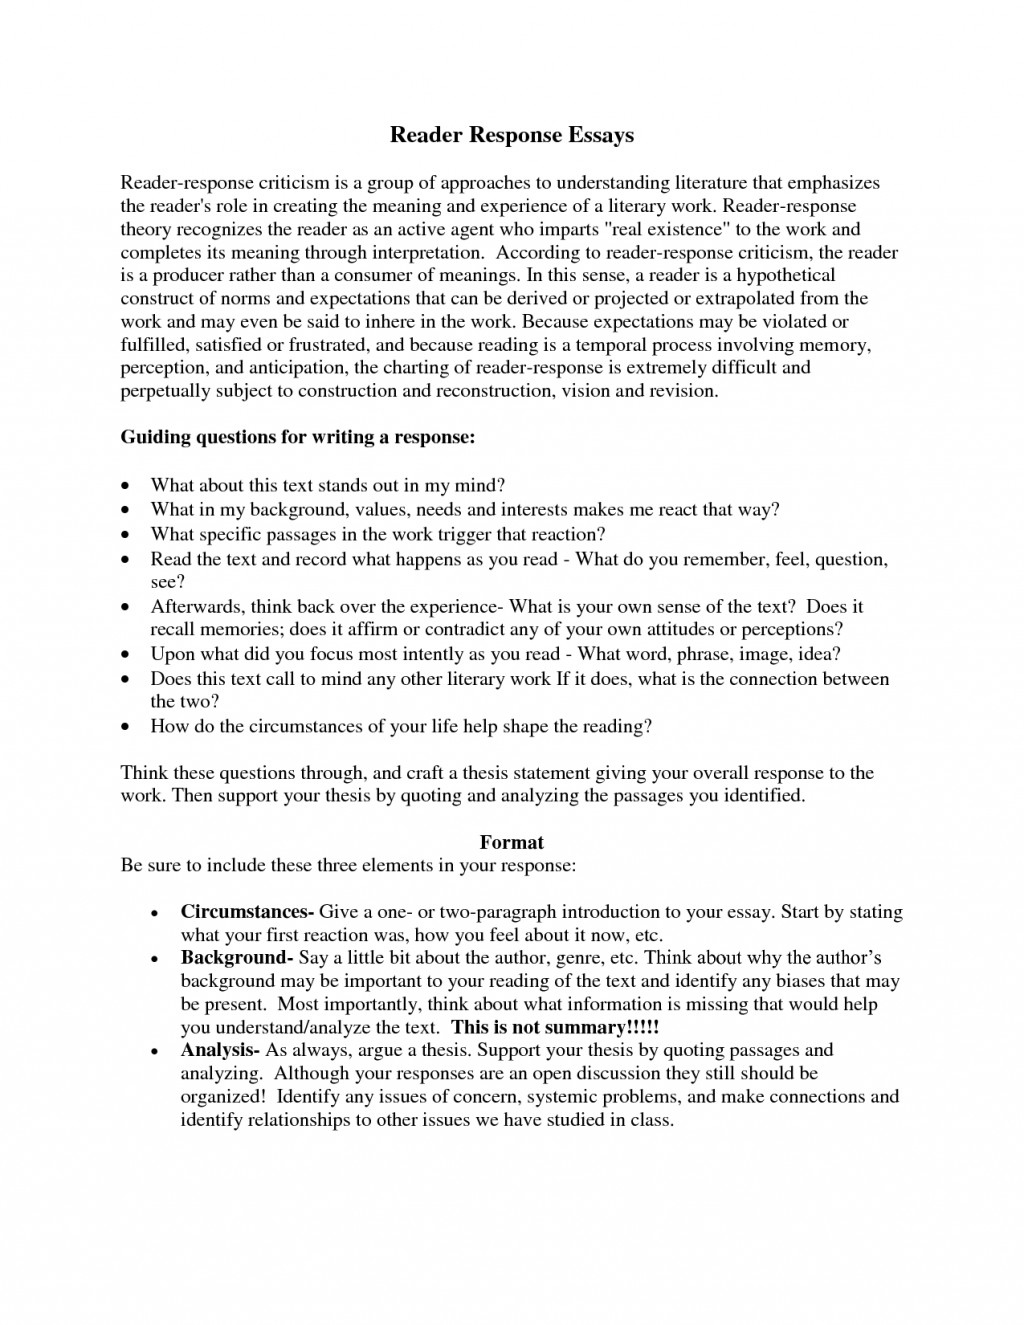 003 Summary Response Essay Example Background Define Discuss And Illustrate With Sample Of Critical Analysis Crossing Brooklyn How To Write Excellent Pdf Strong Large